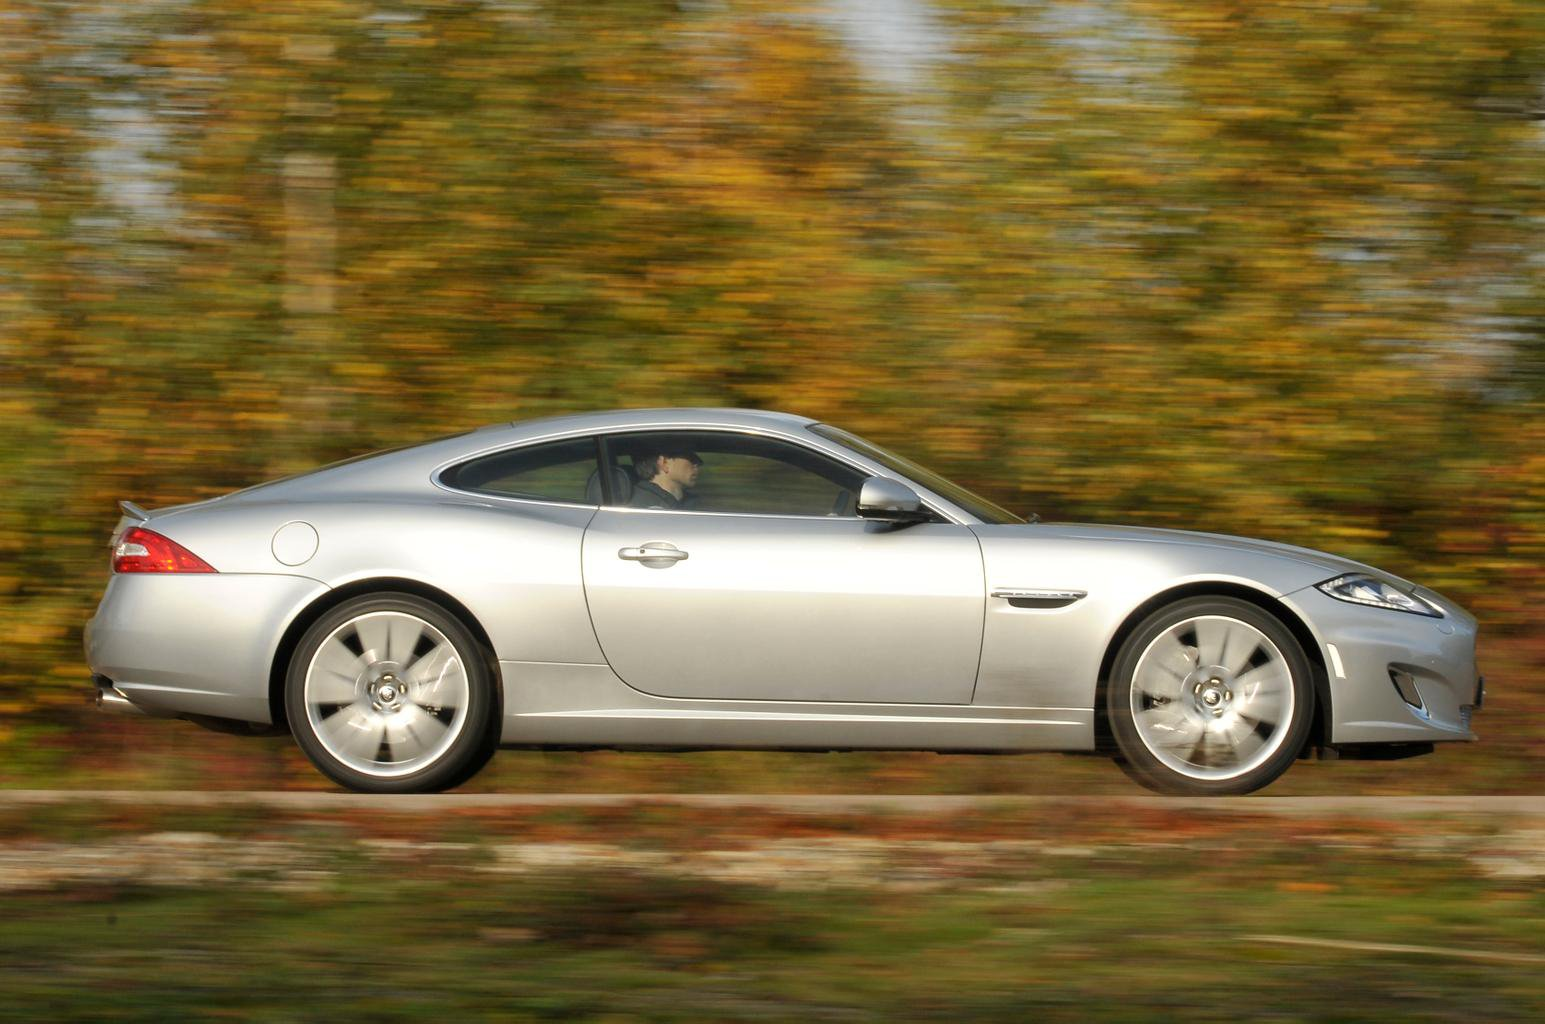 Used test: BMW 6 Series Coupe vs Jaguar XK